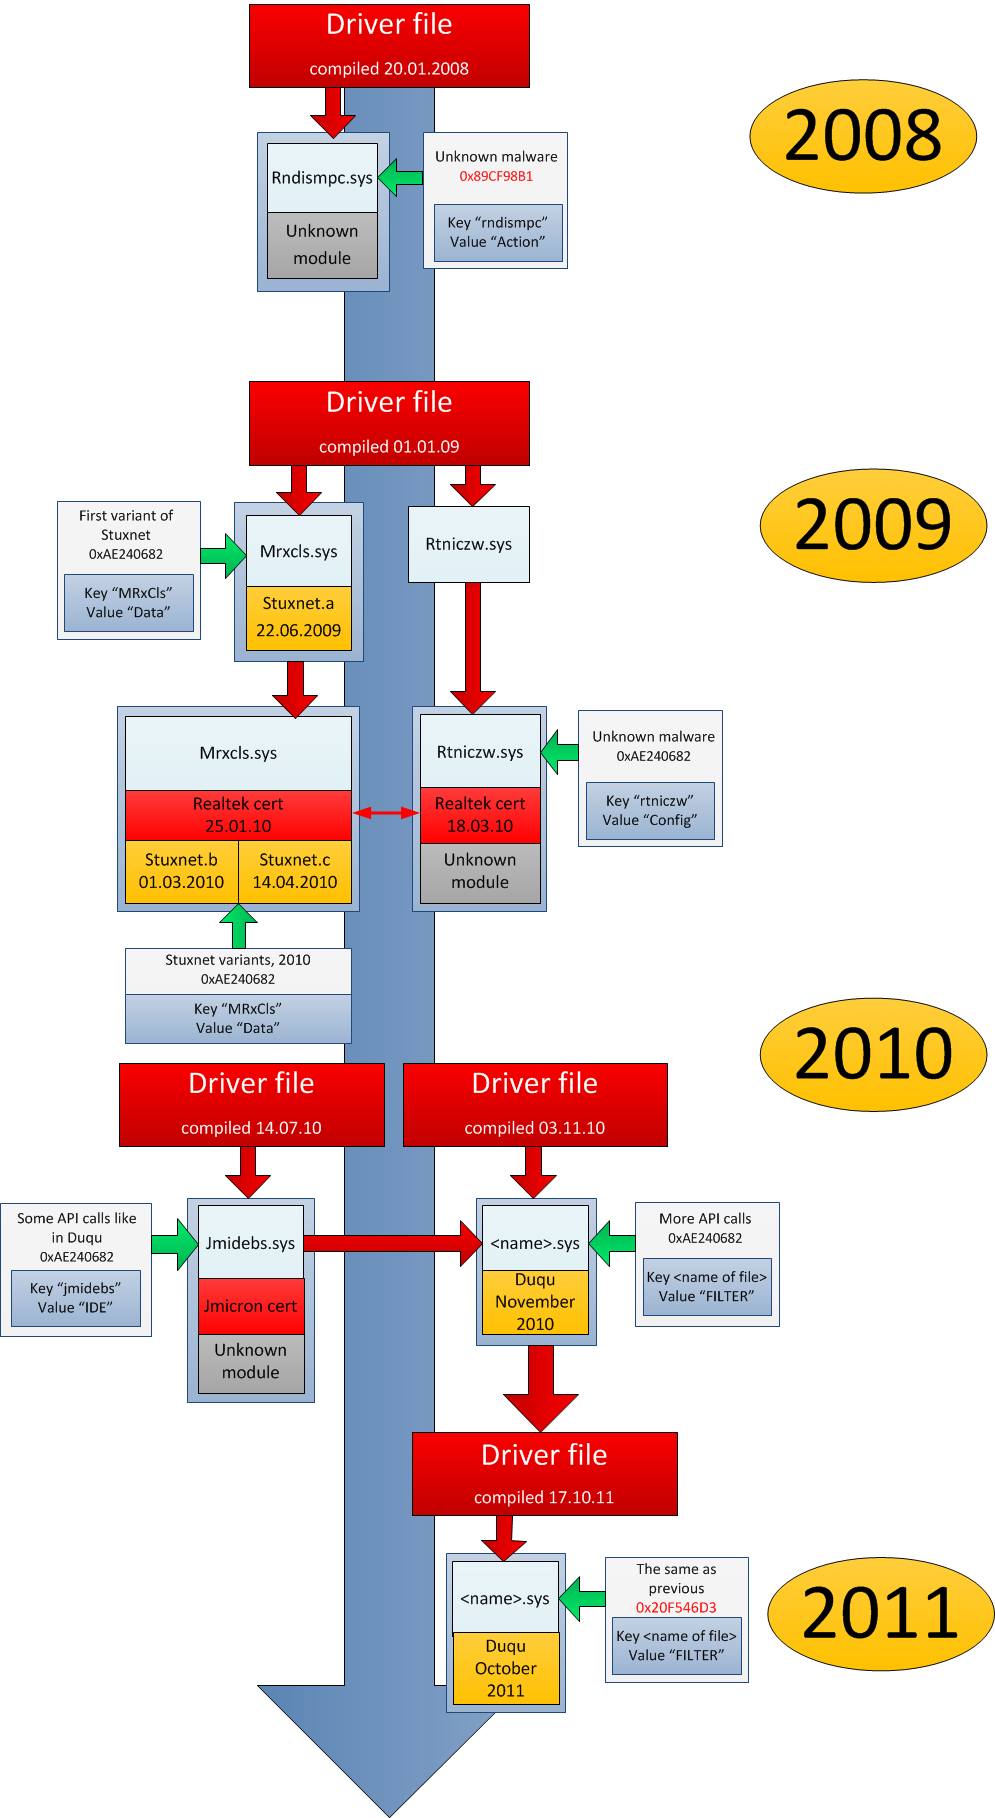 Driver evolution from 2008 to 2011